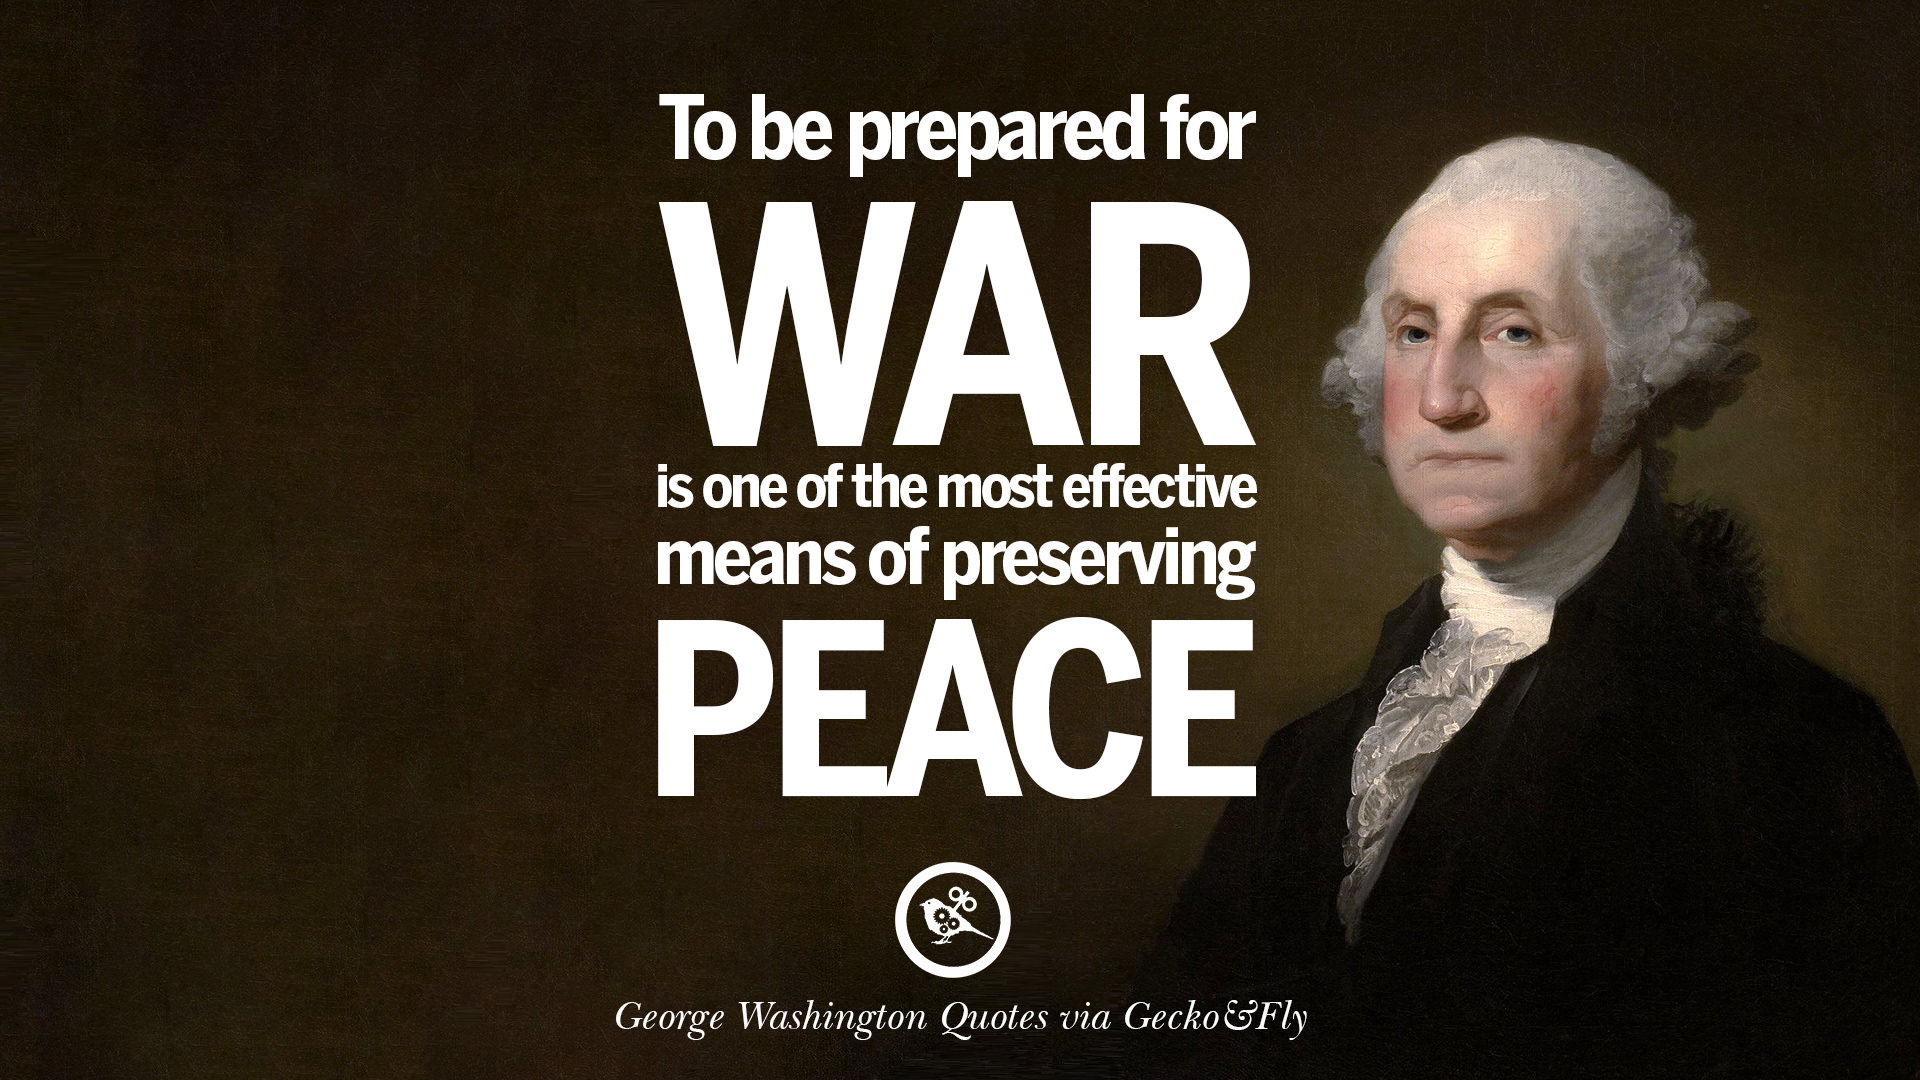 George Washington Quotes 20 Famous George Washington Quotes on Freedom, Faith, Religion  George Washington Quotes